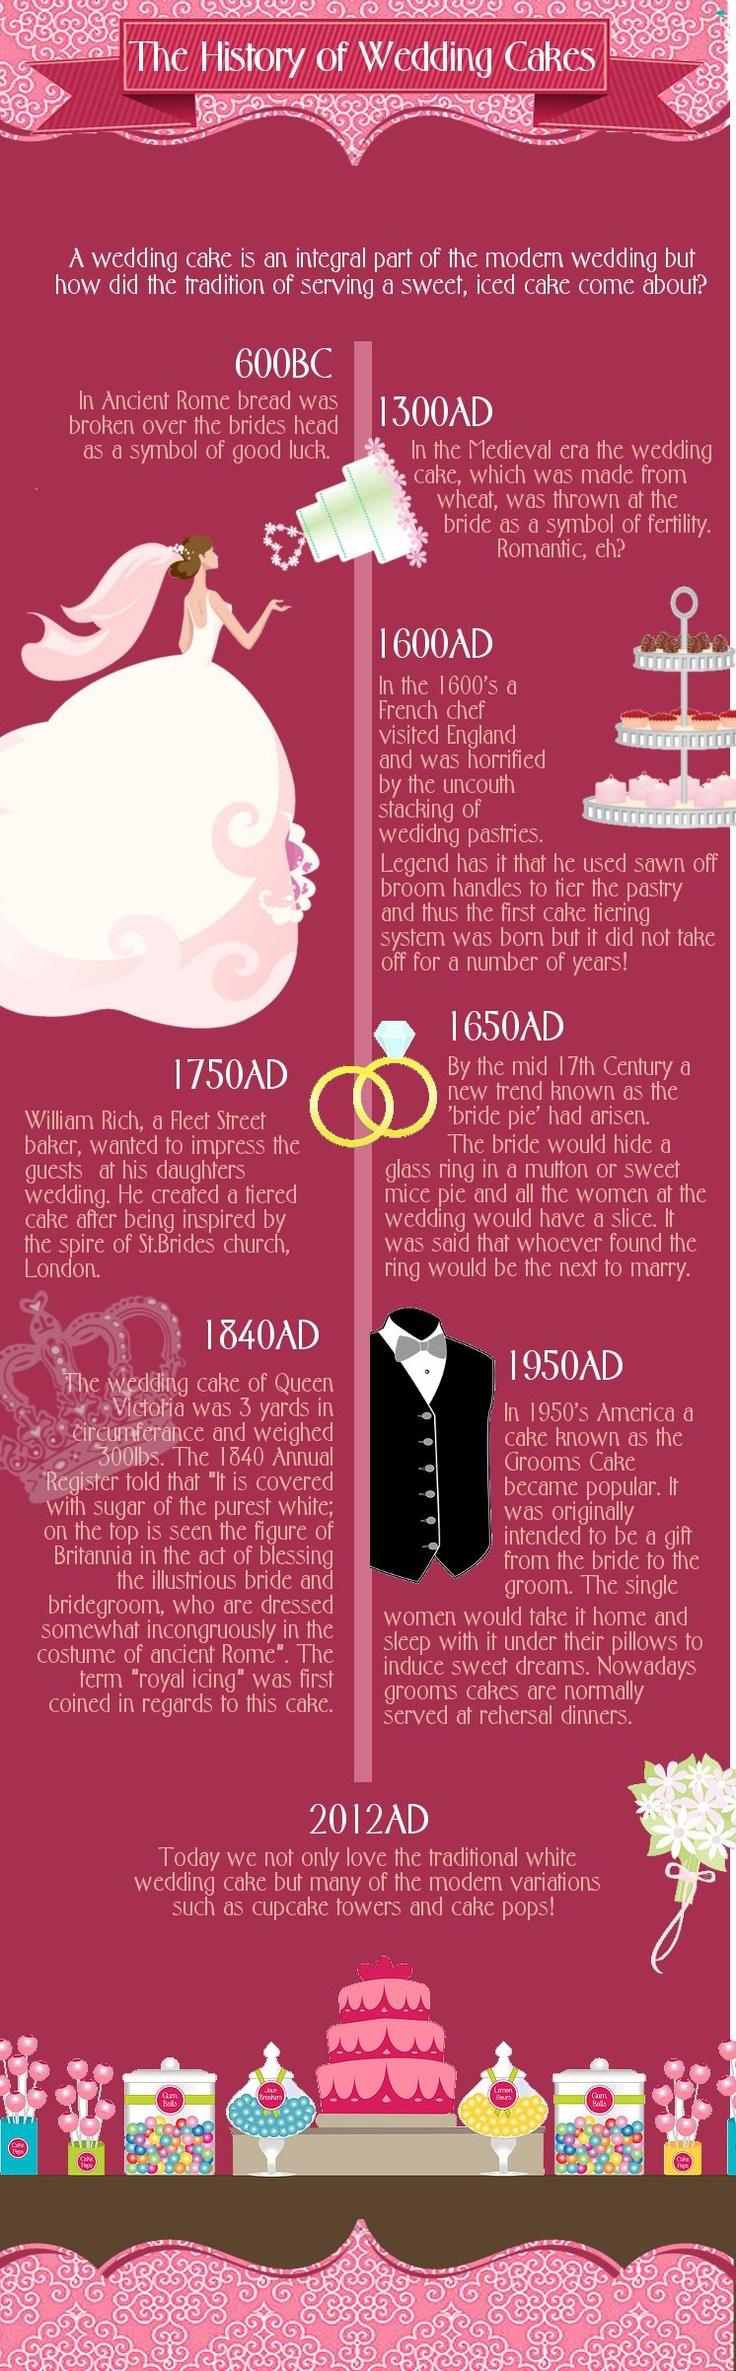 From infographics wedding pictures pinterest wedding pictures